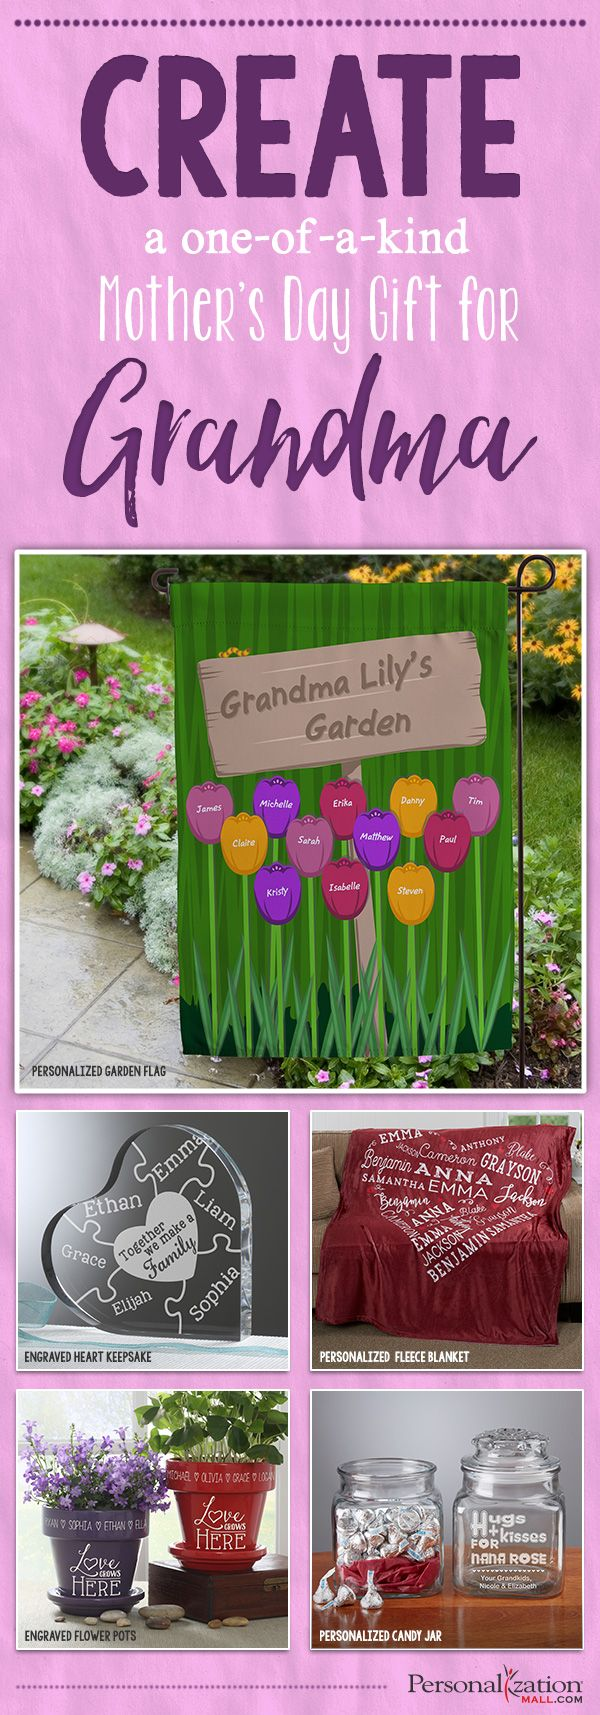 LOVE these one-of-a-kind Mother's Day Gift ideas for Grandma! They are cute and affordable Personalized Mother's Day Gifts that are so special! Such great, unique Gifts for Grandmas!